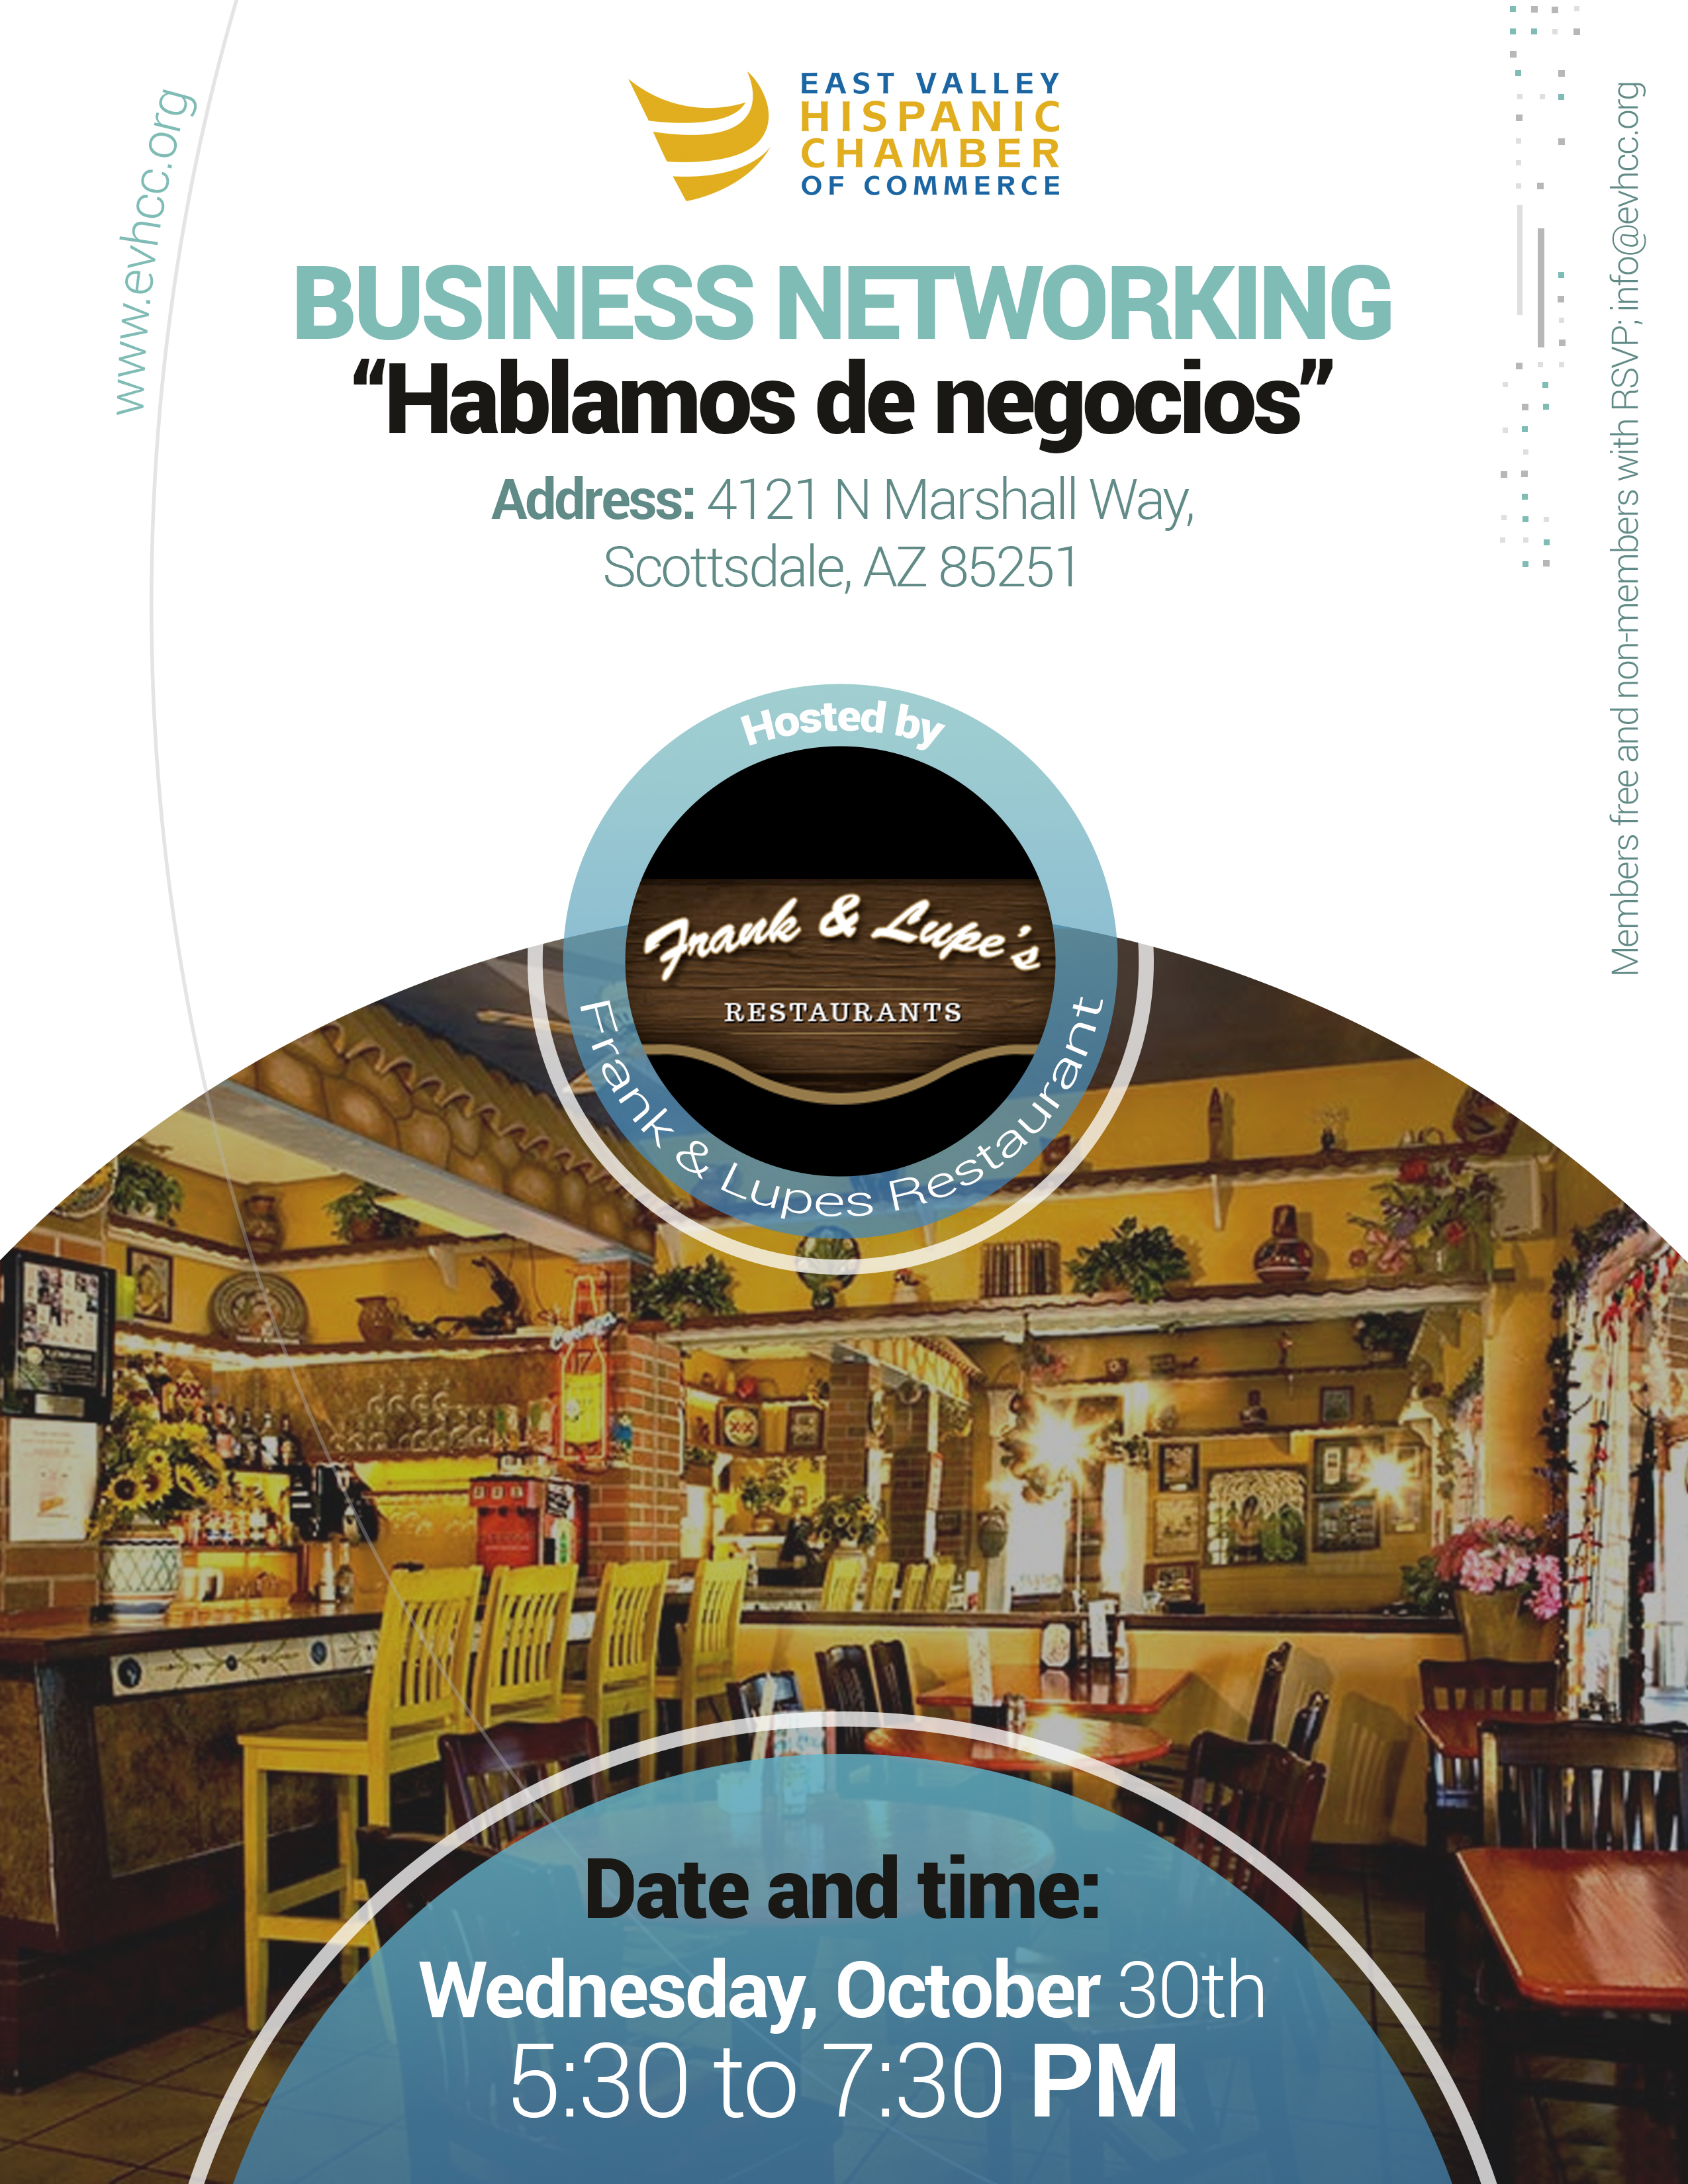 Hablemos de Negocios by the EAst Valley Hispanic Chamber of Commerce